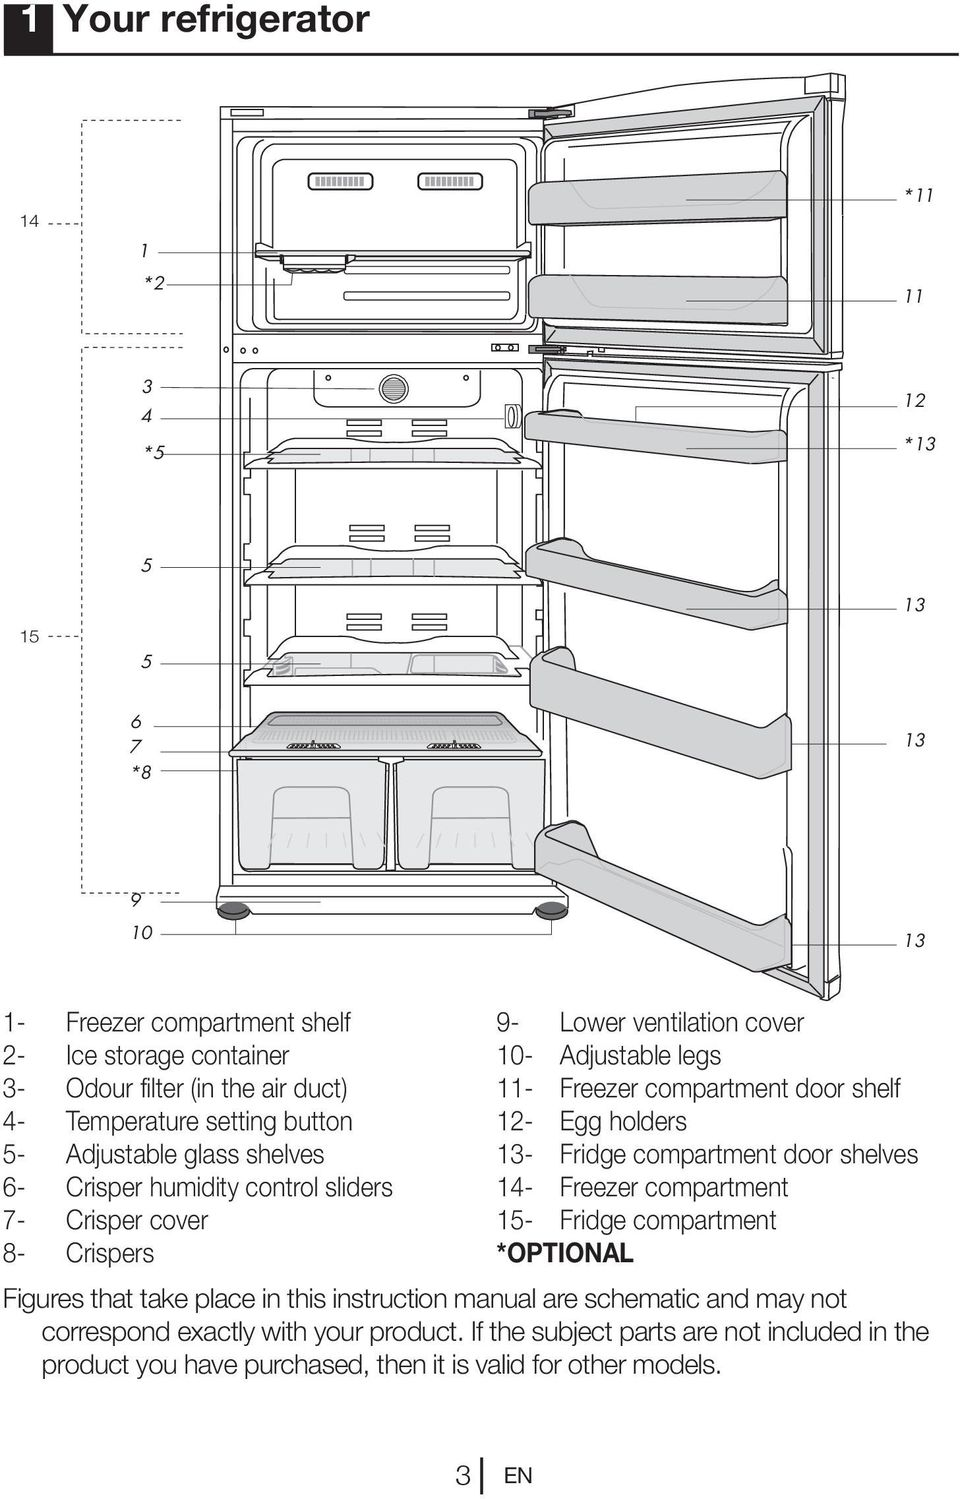 Freezer compartment door shelf 12- Egg holders 13- Fridge compartment door shelves 14- Freezer compartment 15- Fridge compartment *OPTIONAL Figures that take place in this